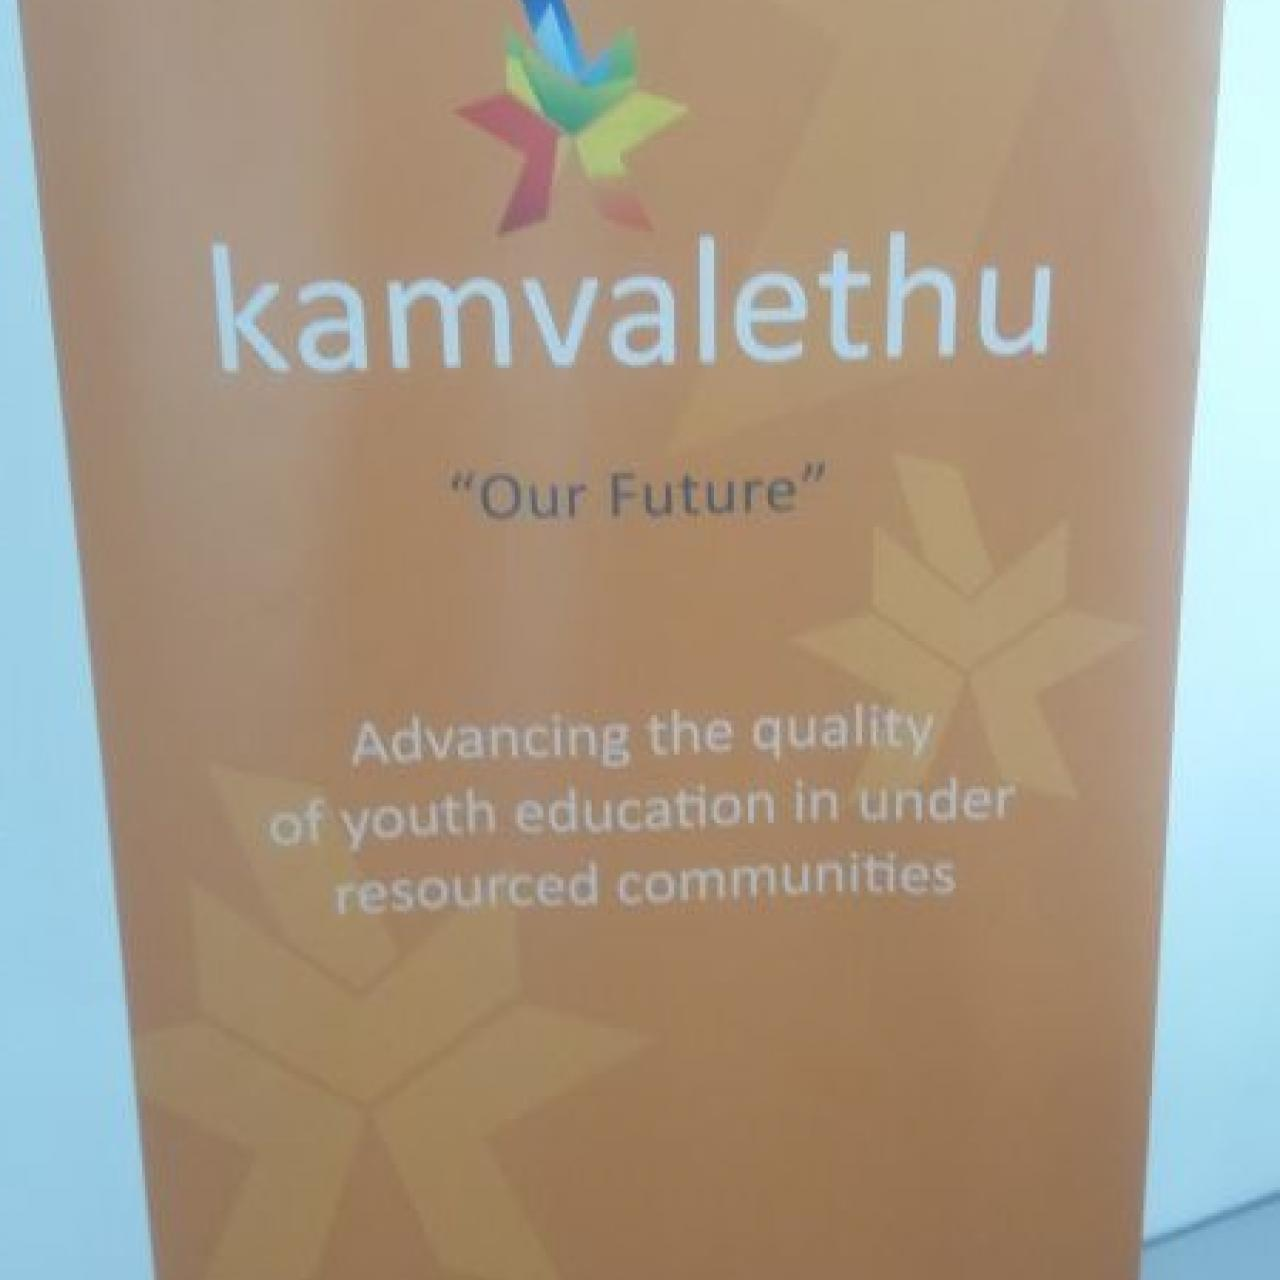 Thank you Kamvalethu for the wonderful support